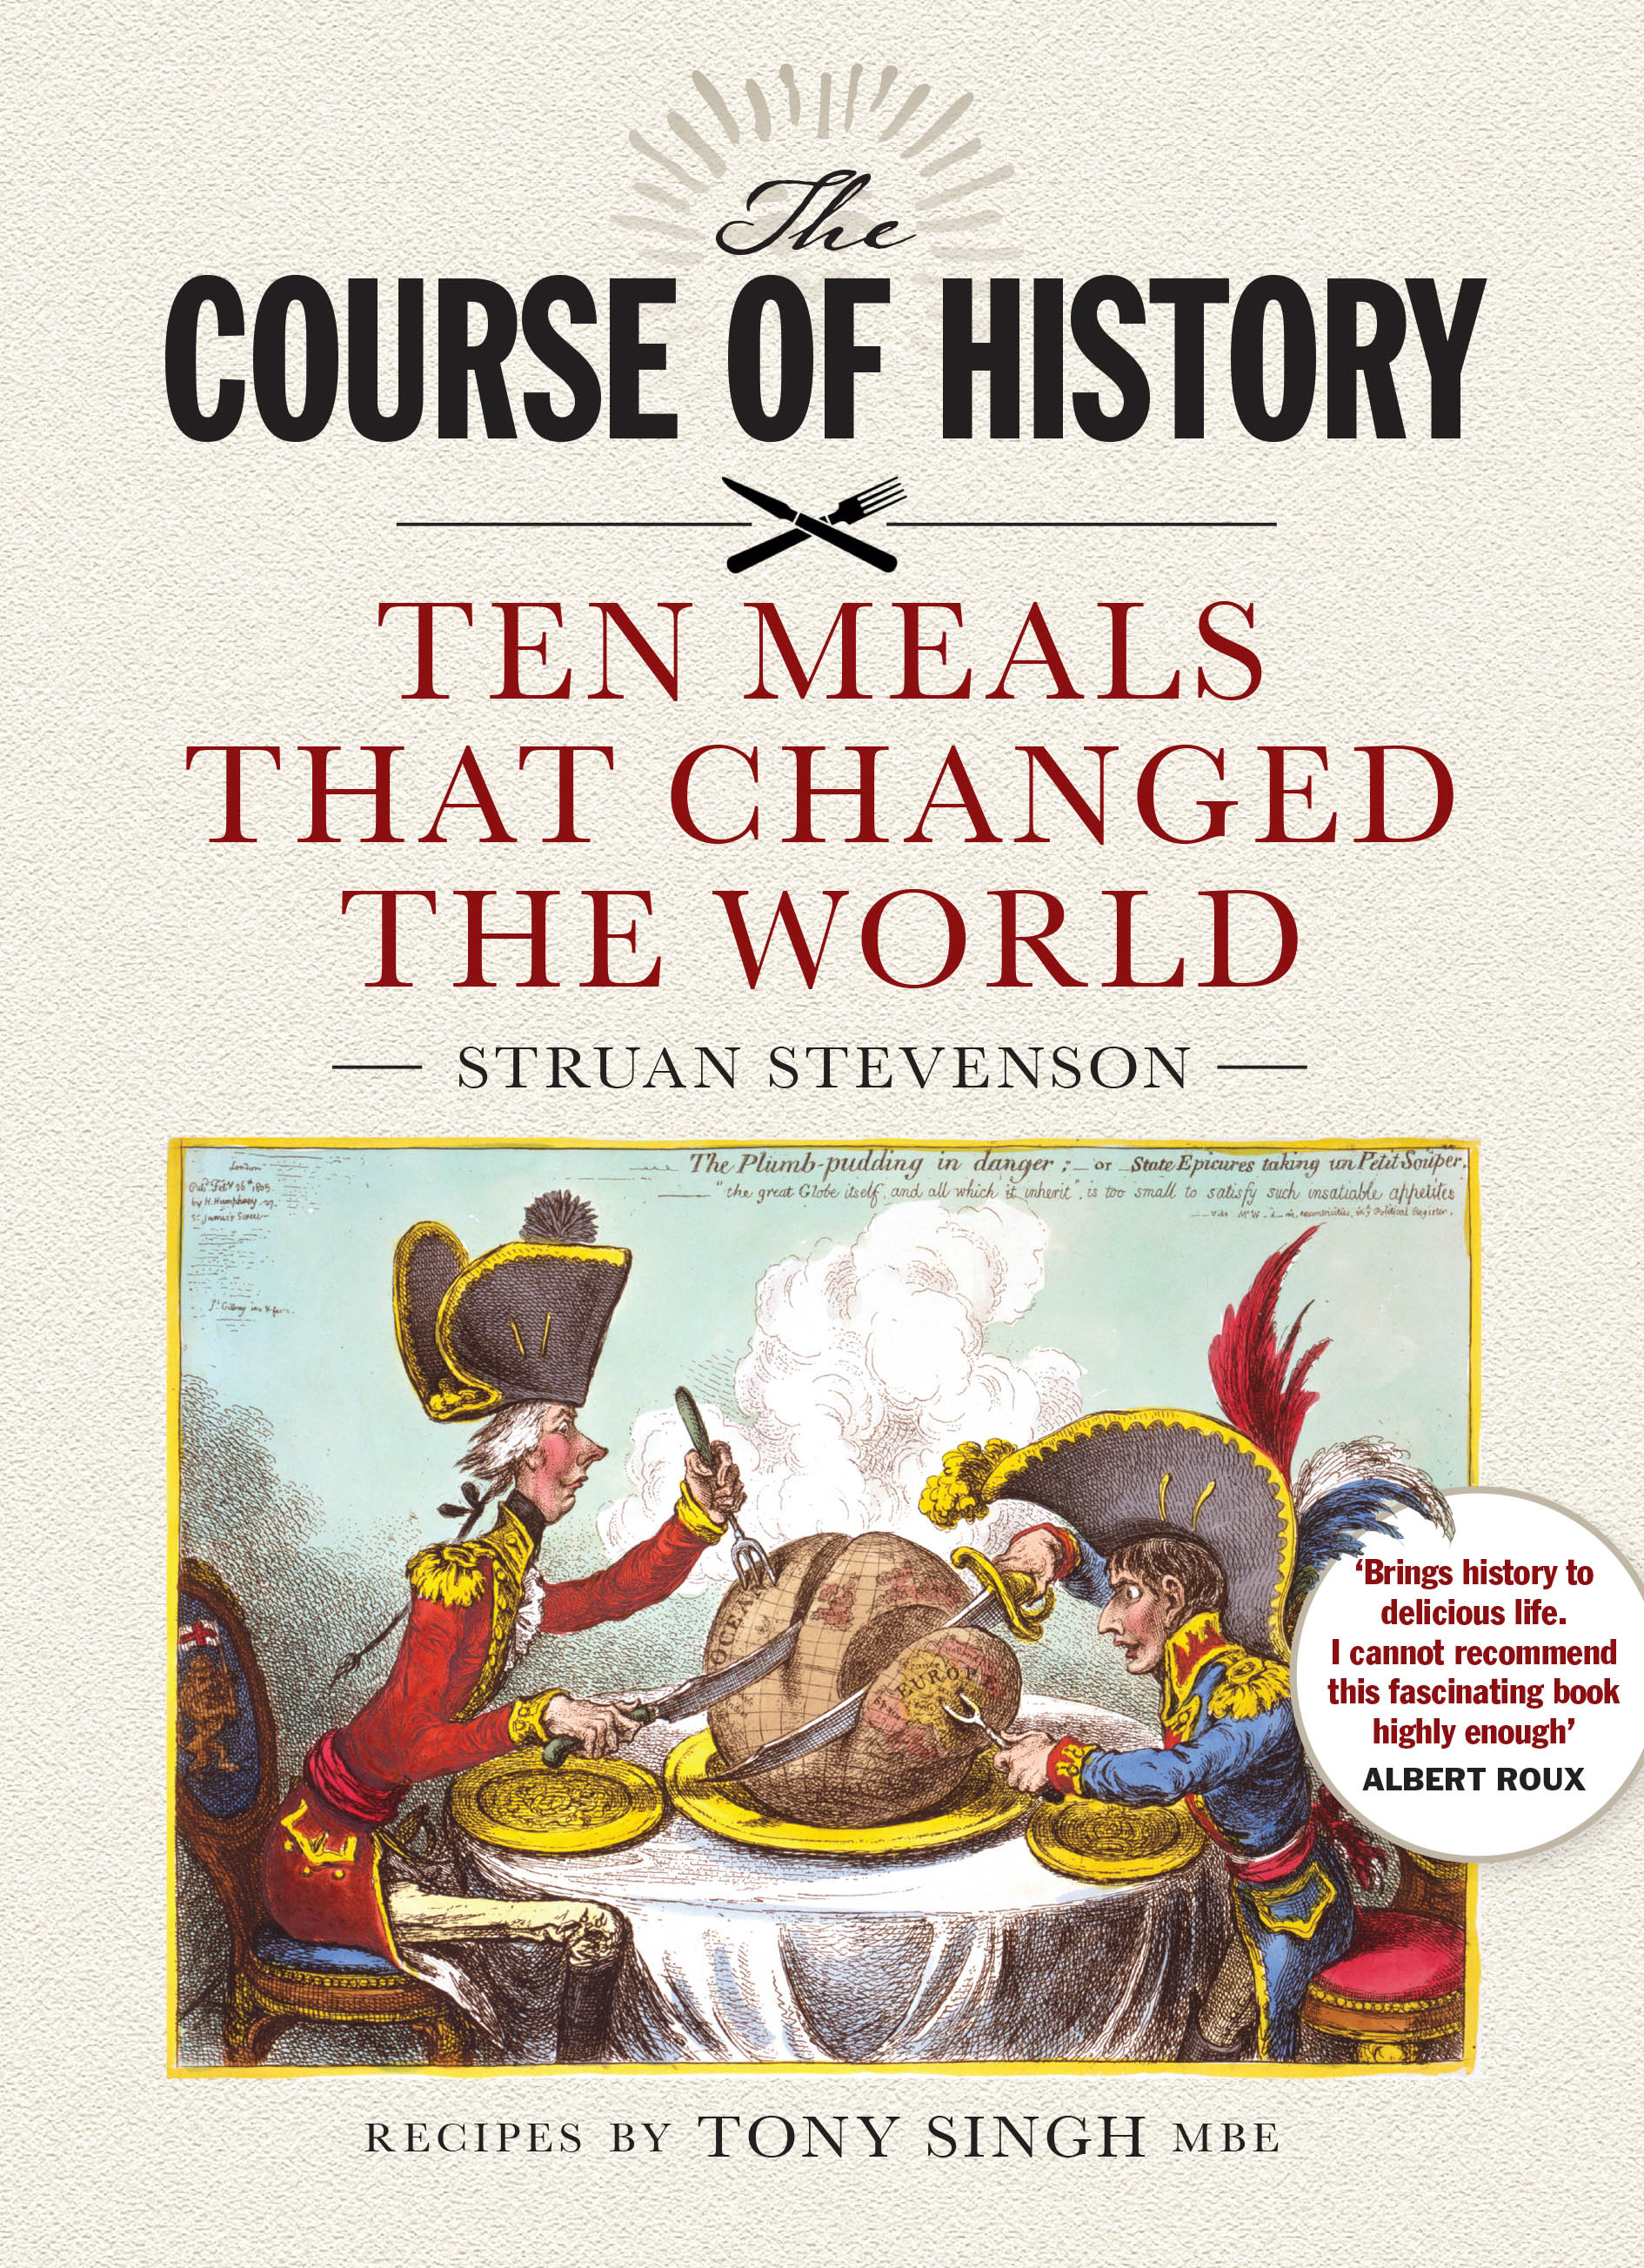 The Course of History book cover